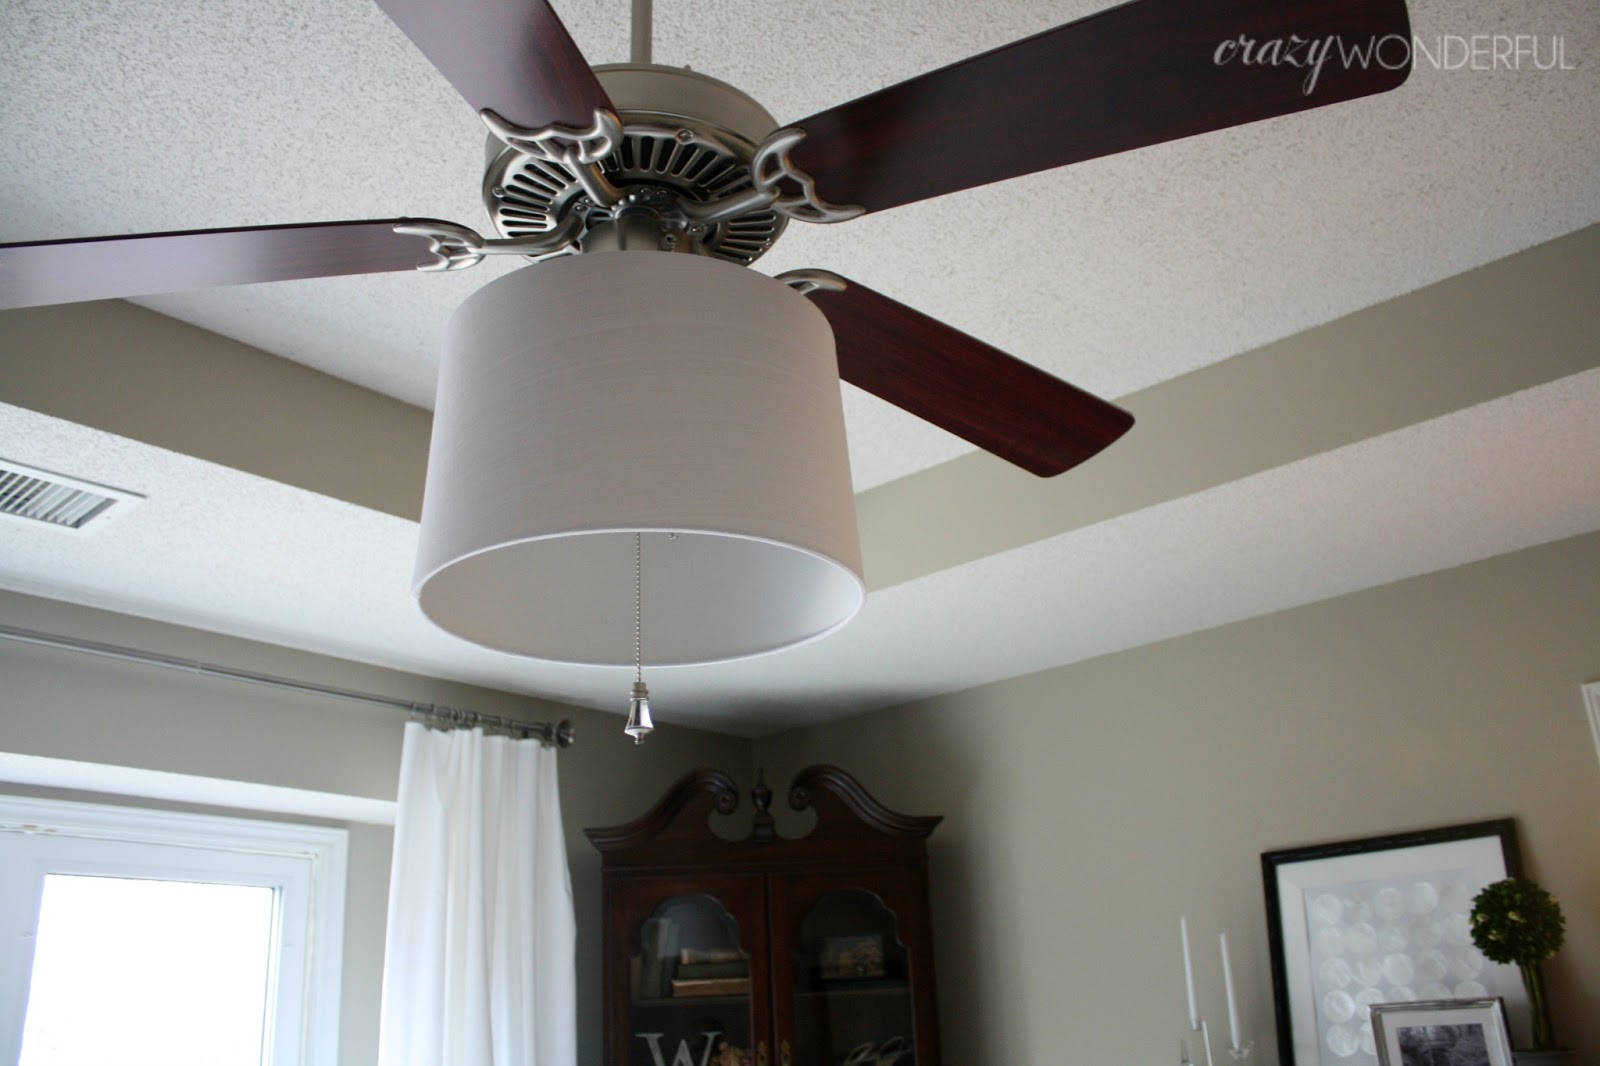 Adding A Drum Shade To A Ceiling Fan Crazy Wonderful